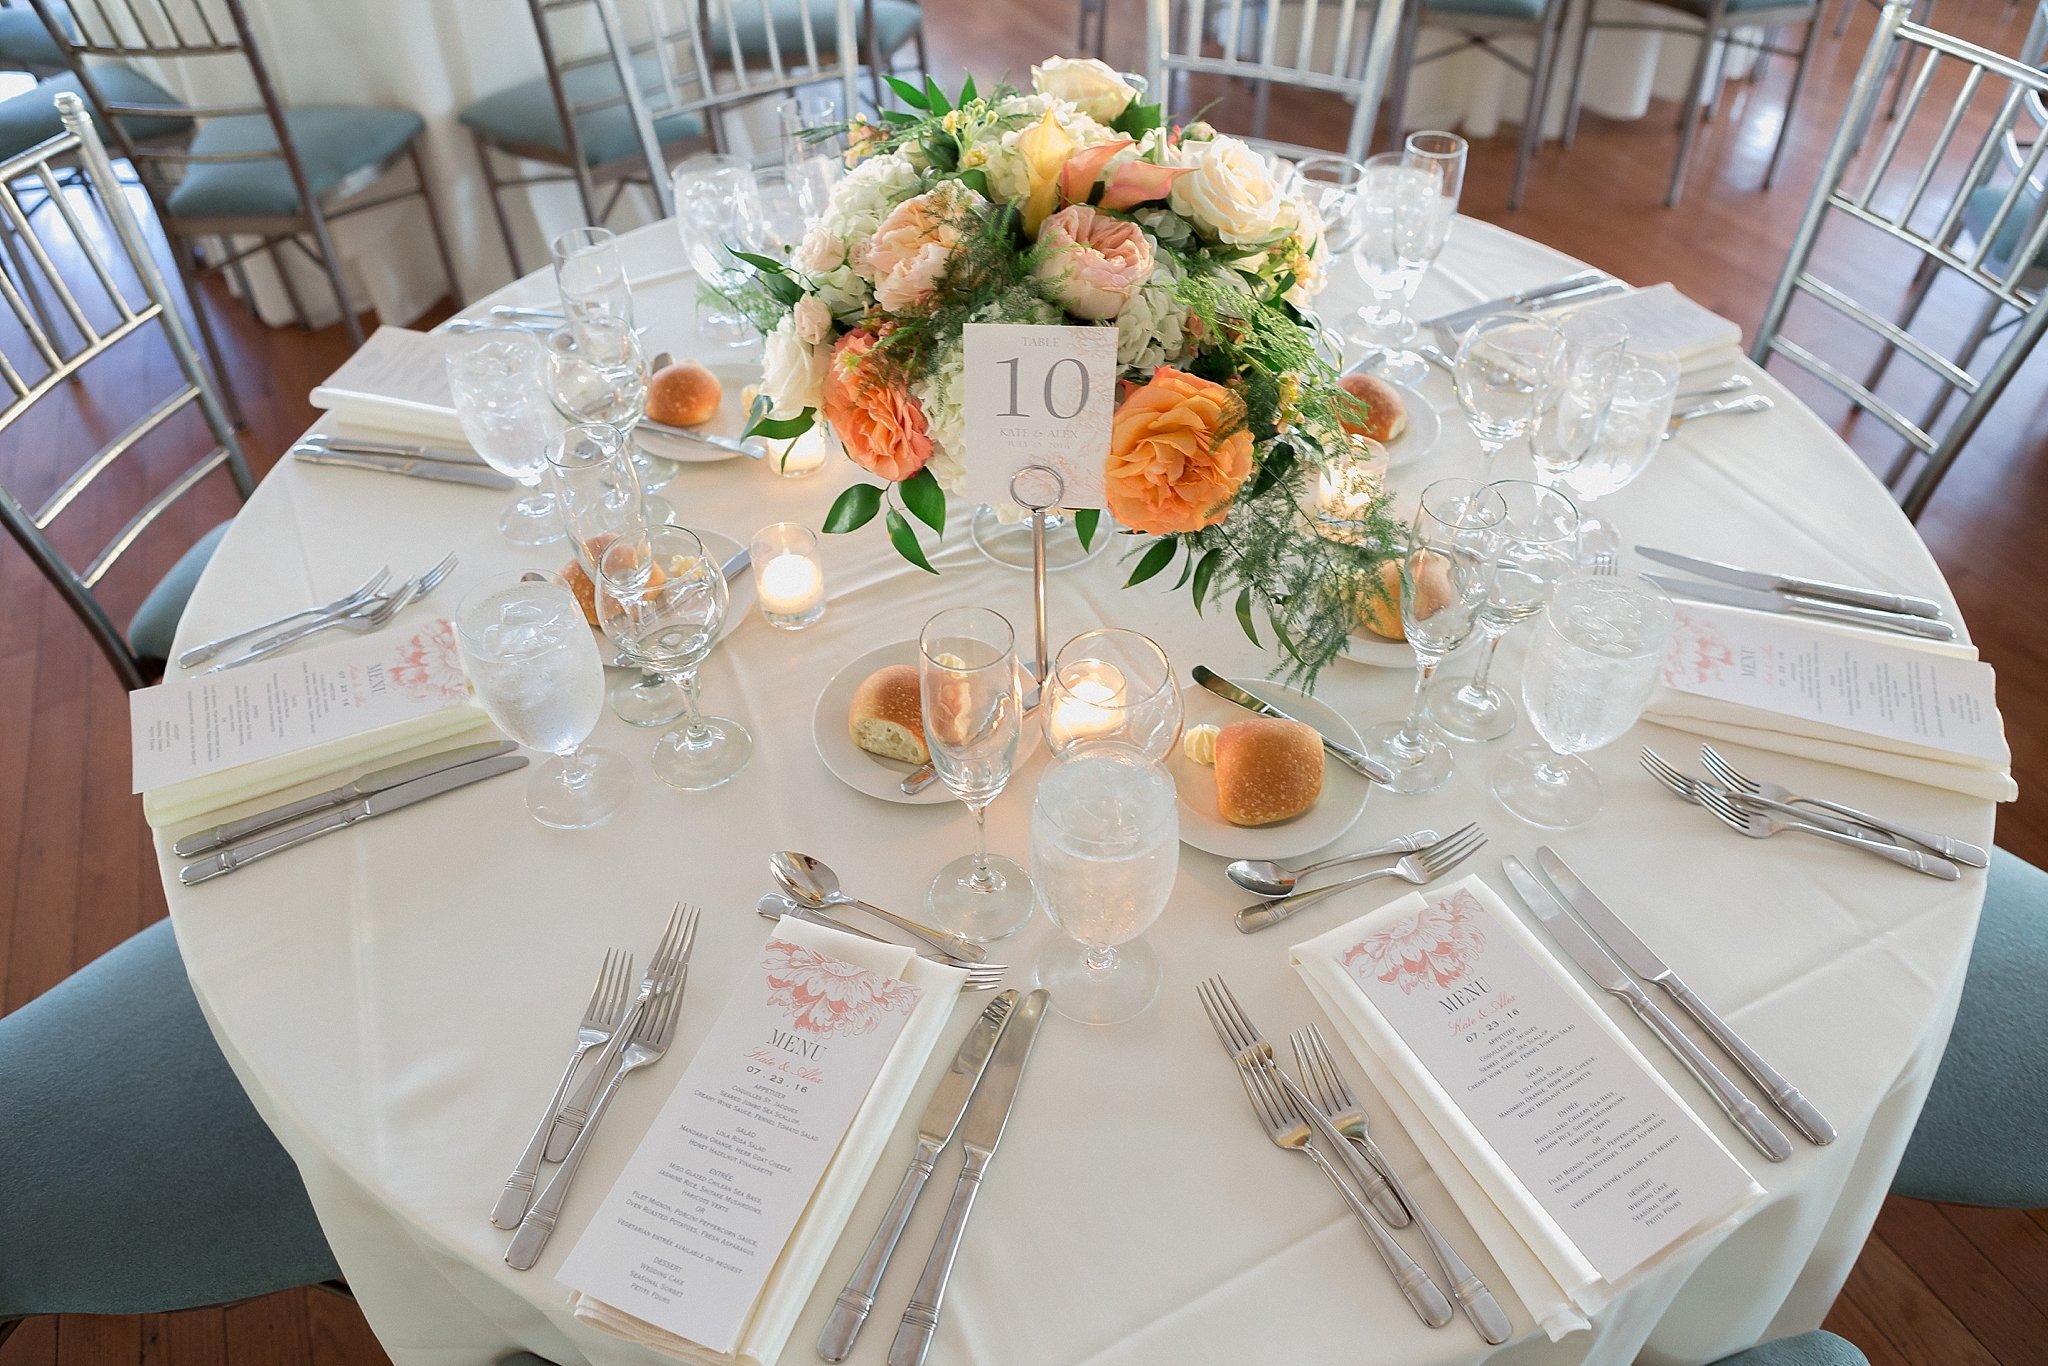 Wedding Reception Styling at Battery Garden photographed by Susan Shek Wedding Photography in New York City, NY.